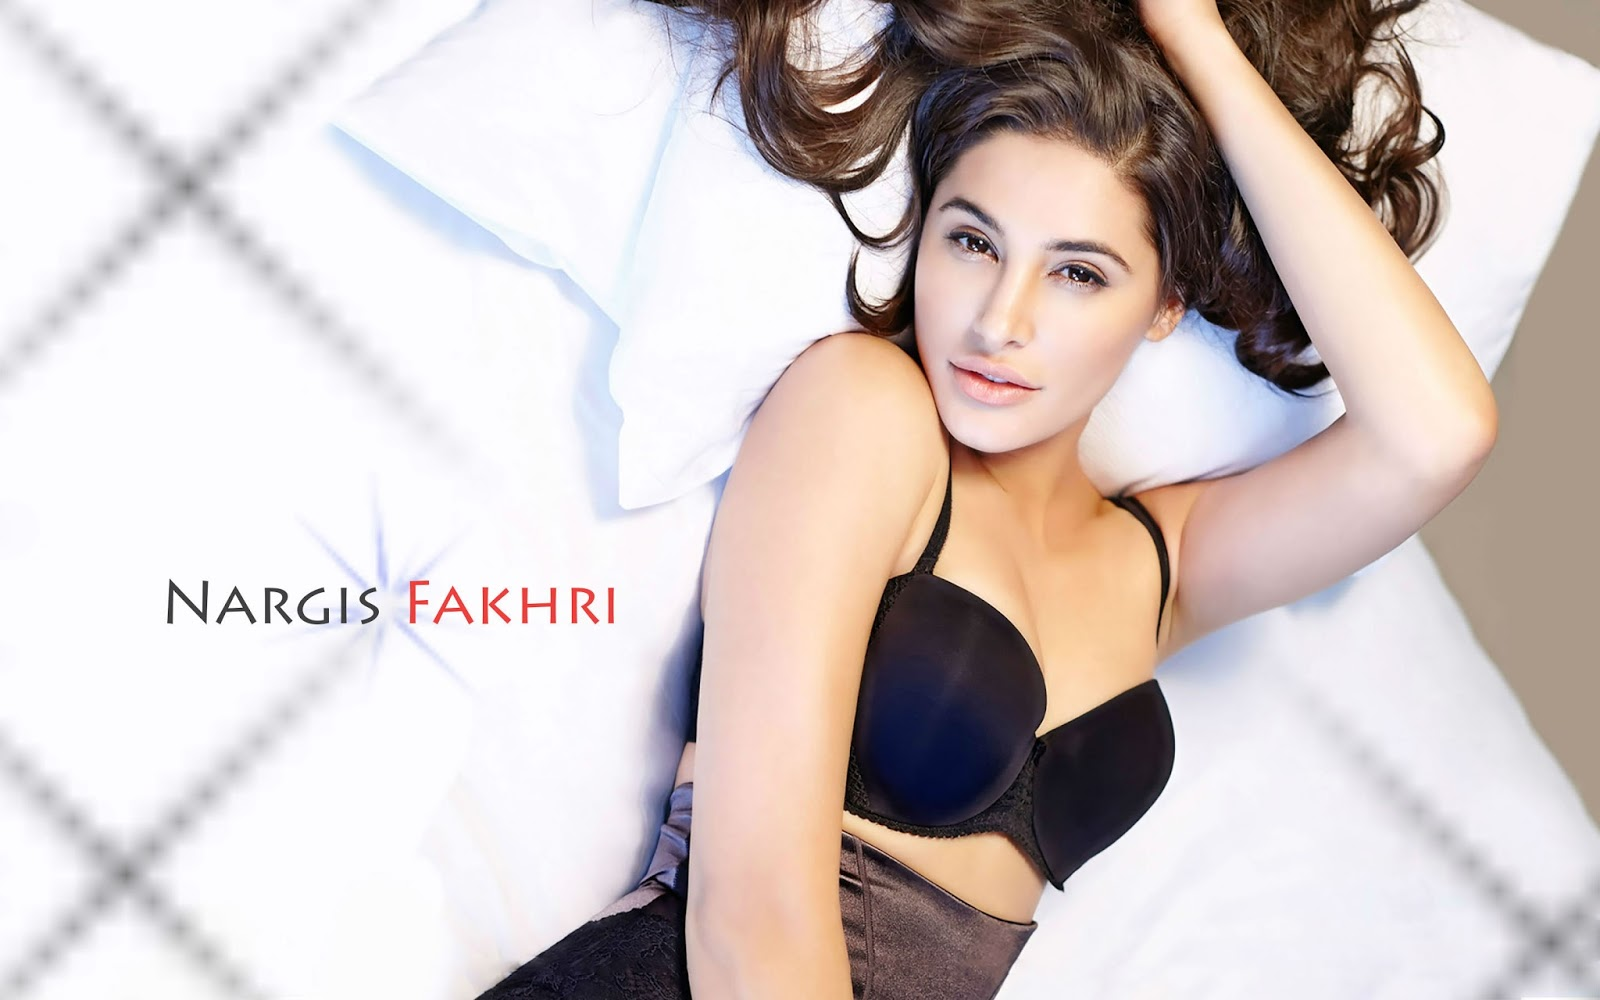 nargis-fakhri-hot-actress-wide